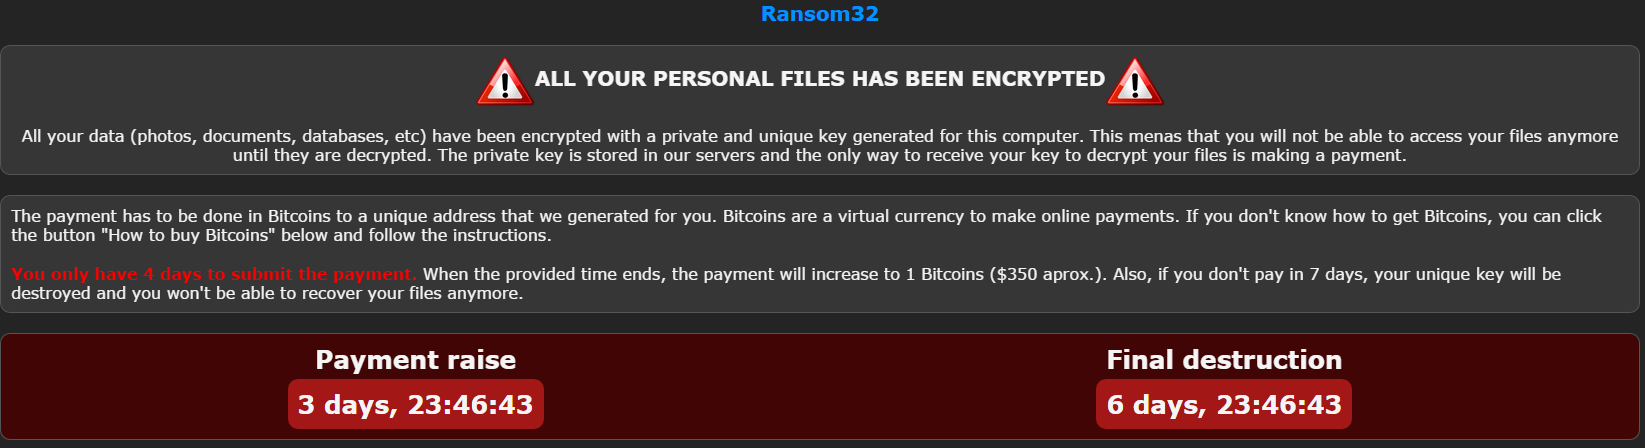 Ransom32 – A RaaS that could be used on multiple OS